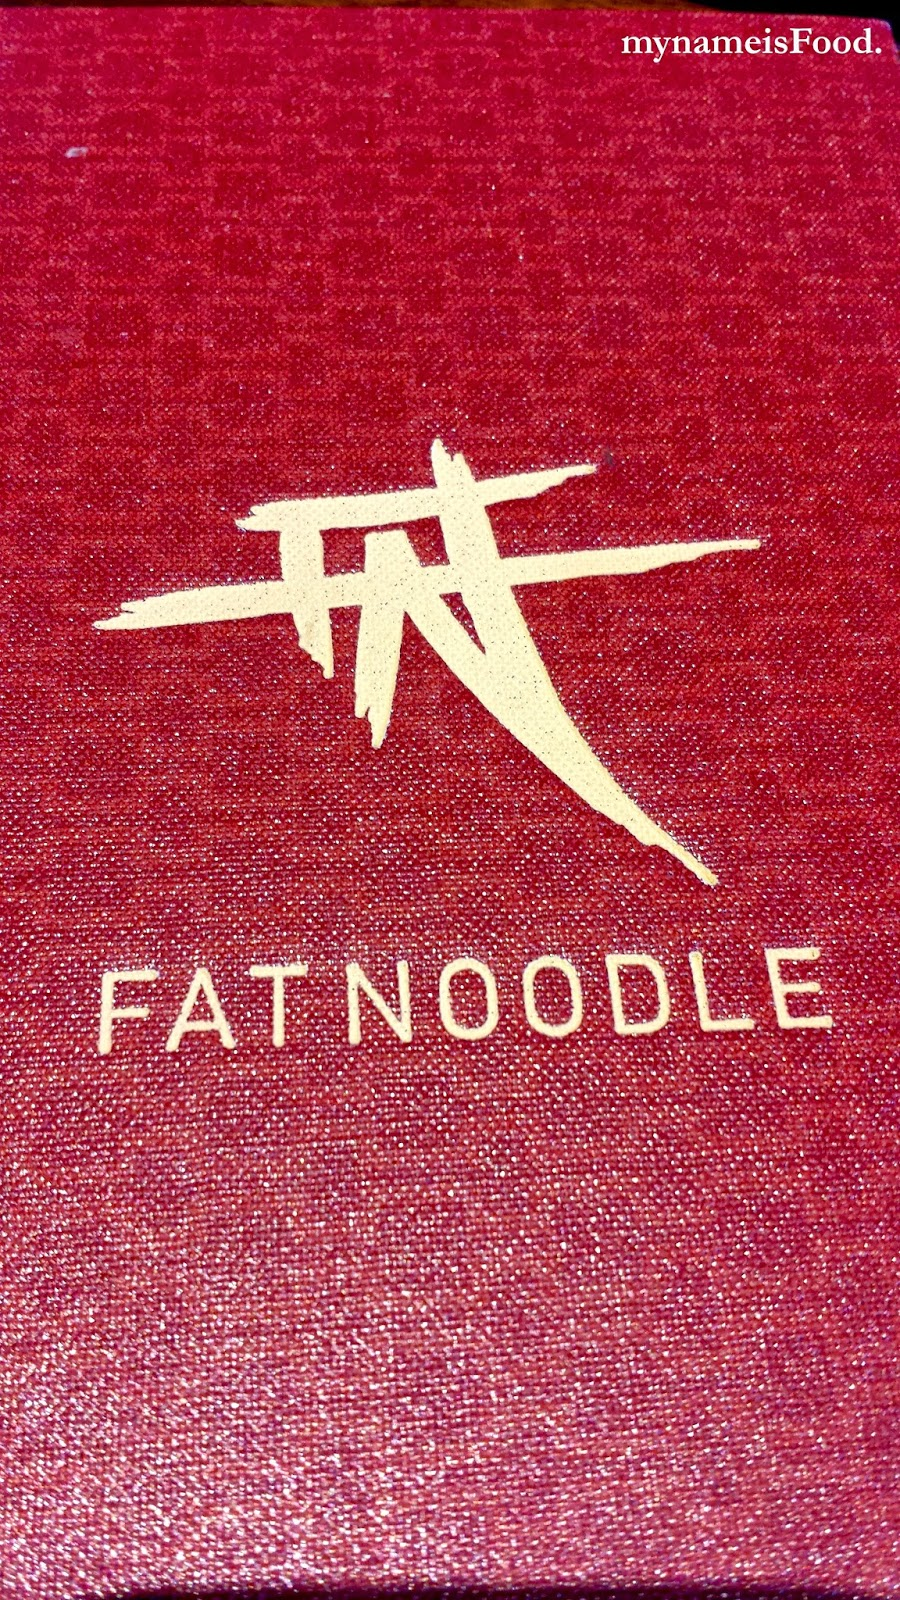 Fat Noodle Treasury Casino